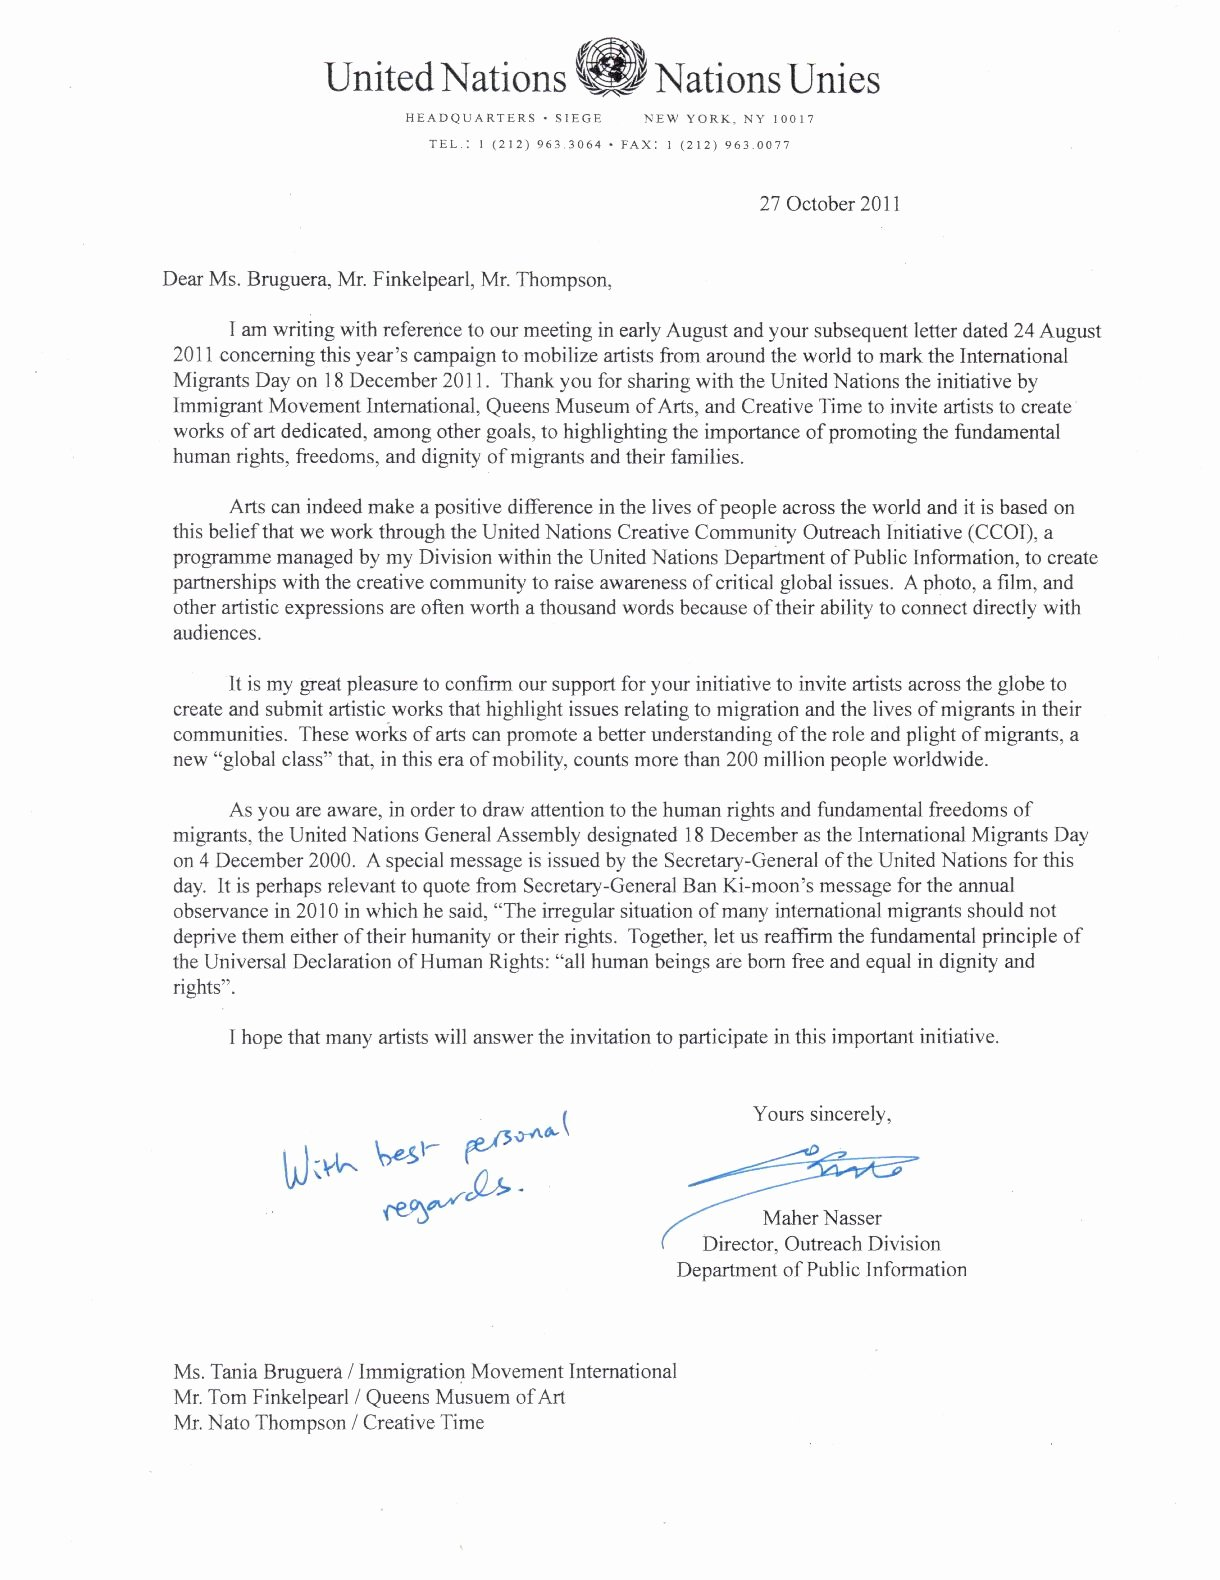 Letter Of Support for Immigration Fresh United Nations Ficial Letter Support for Dec